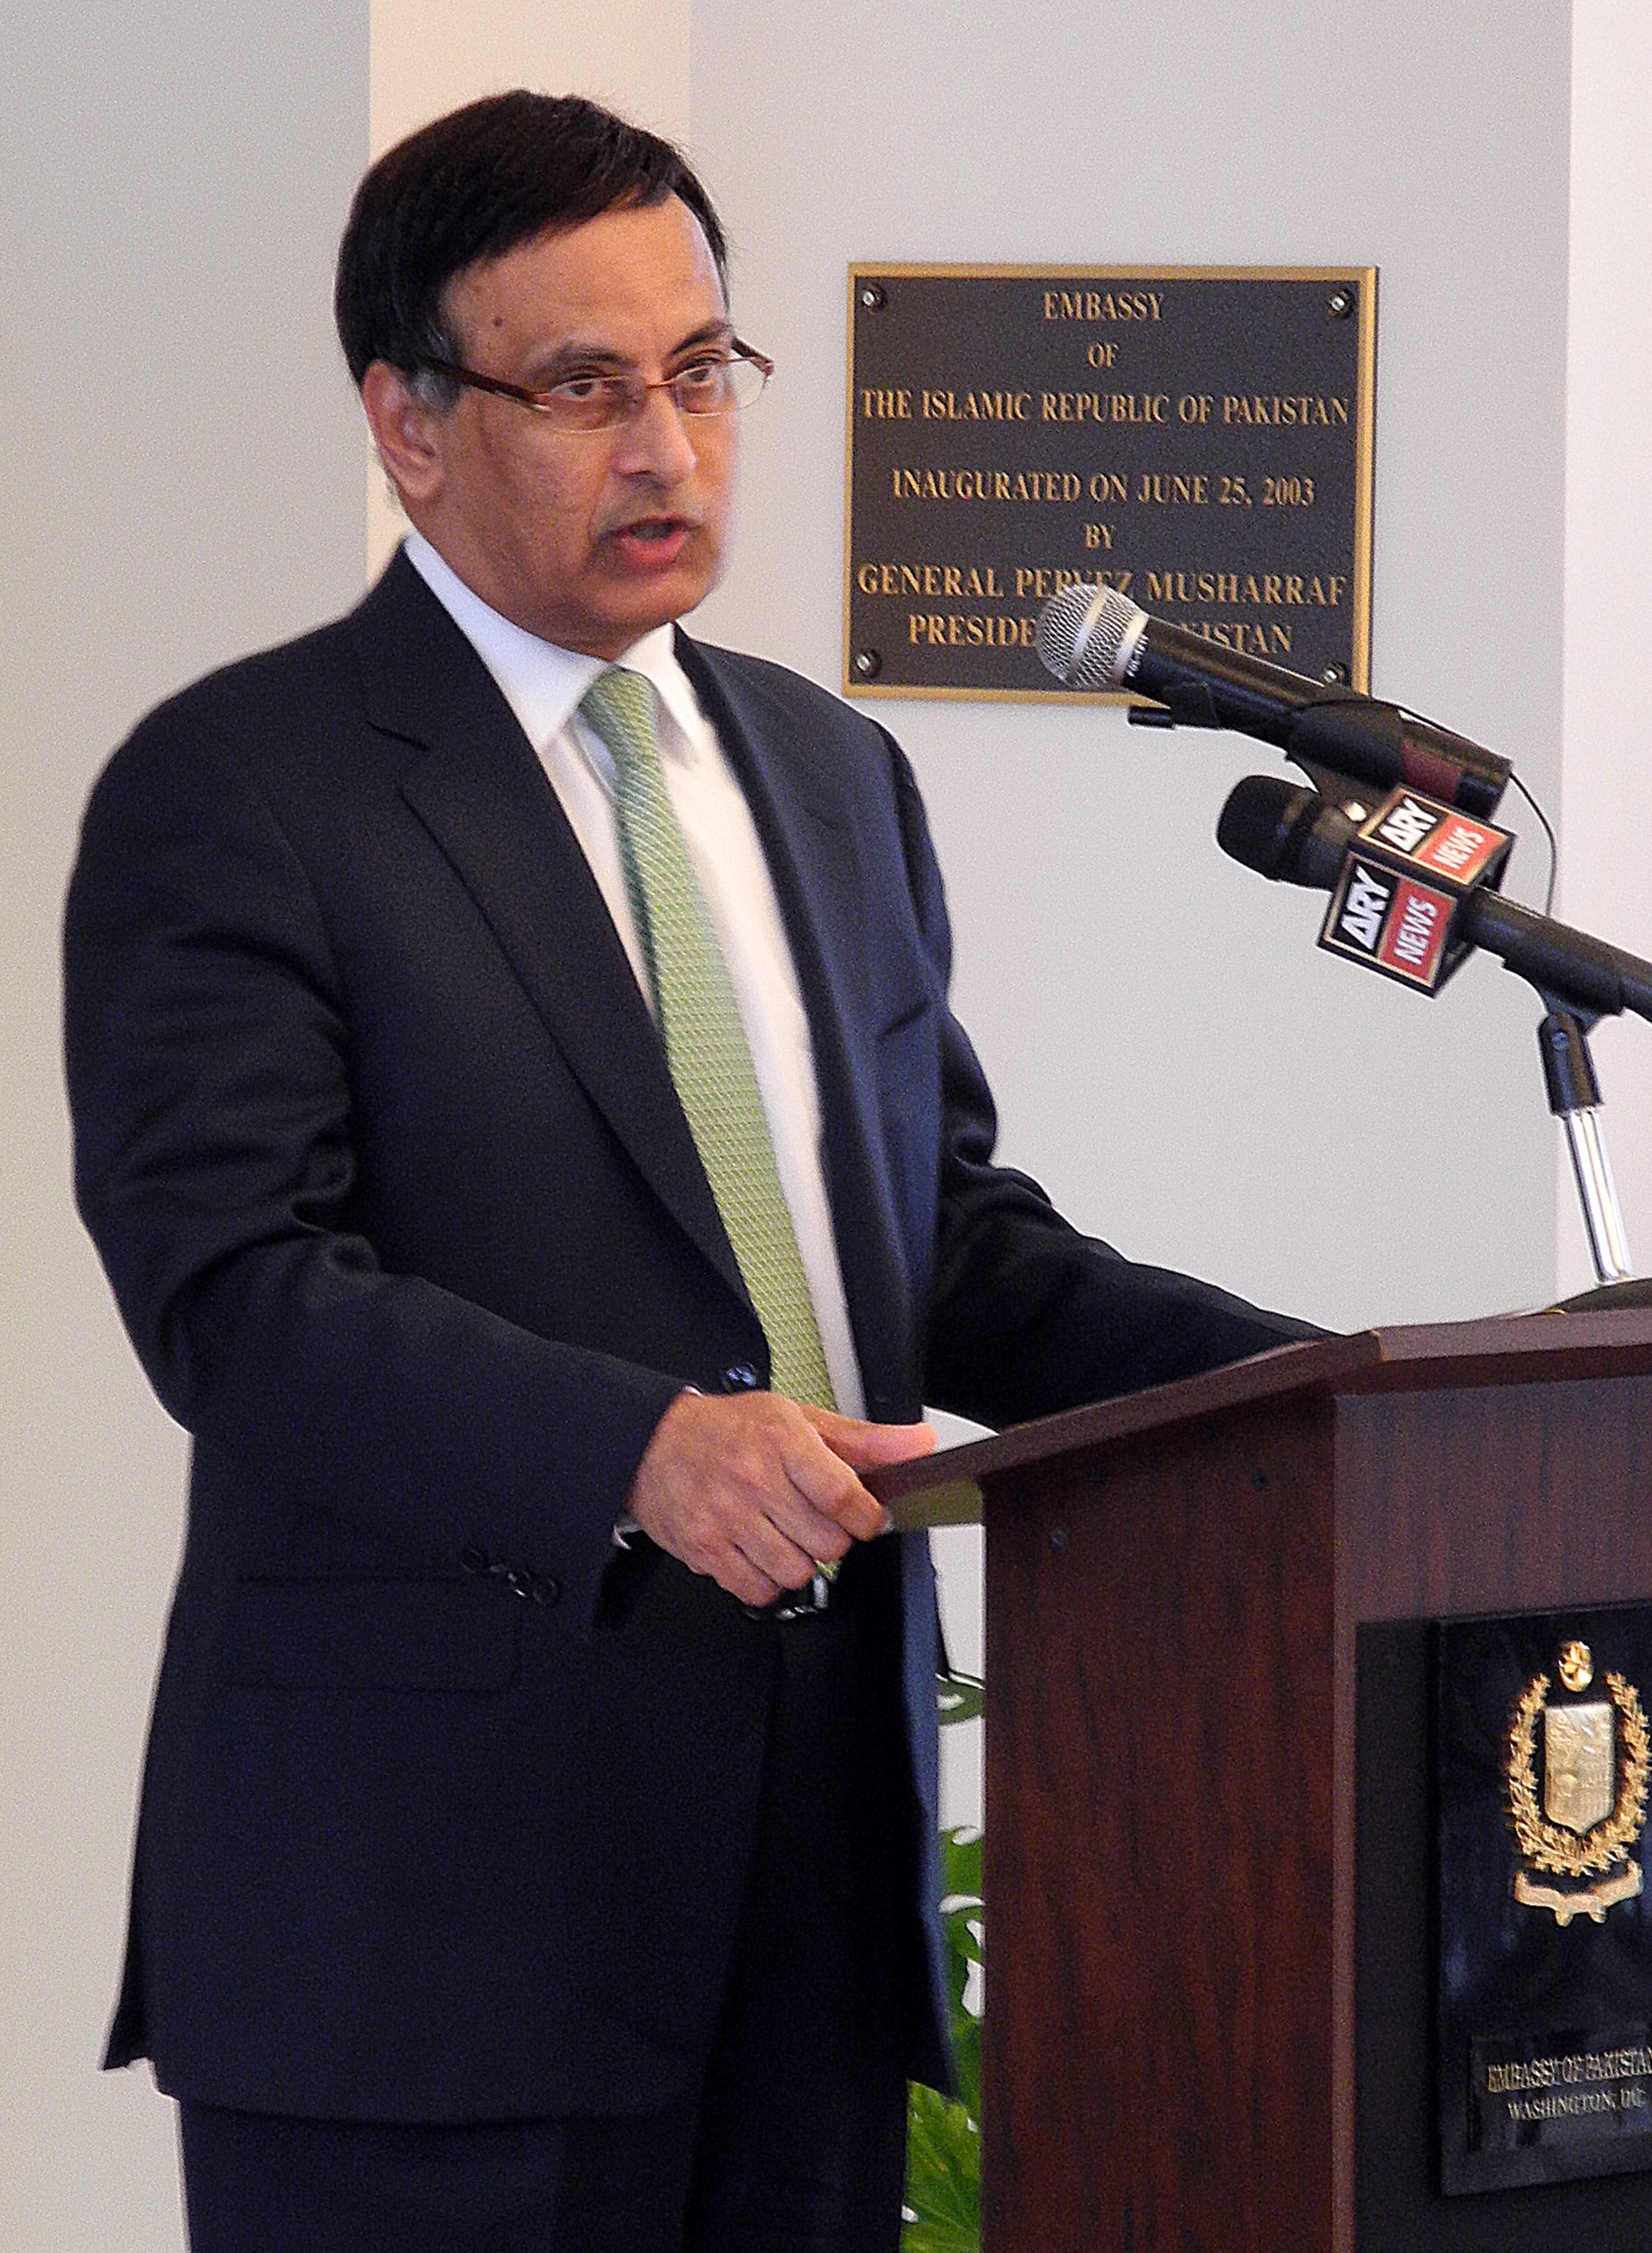 "(FILES) This file photo taken on March 9, 2011 shows Pakistan's ambassador to the United States, Hussain Haqqani, addressing a memorial service in honor of slain minister for minorities Shahbaz Bhatti at the embassy in Washington. The White House said on November 22, 2011 that the resignation of Haqqani, was an ""internal issue"" for Pakistan but praised him as ""a very close partner."" Pakistan's government said earlier that it had asked Haqqani to resign and ordered a probe into claims that he sought American help against the country's powerful military. AFP PHOTO / FILES / SHAUN TANDON"